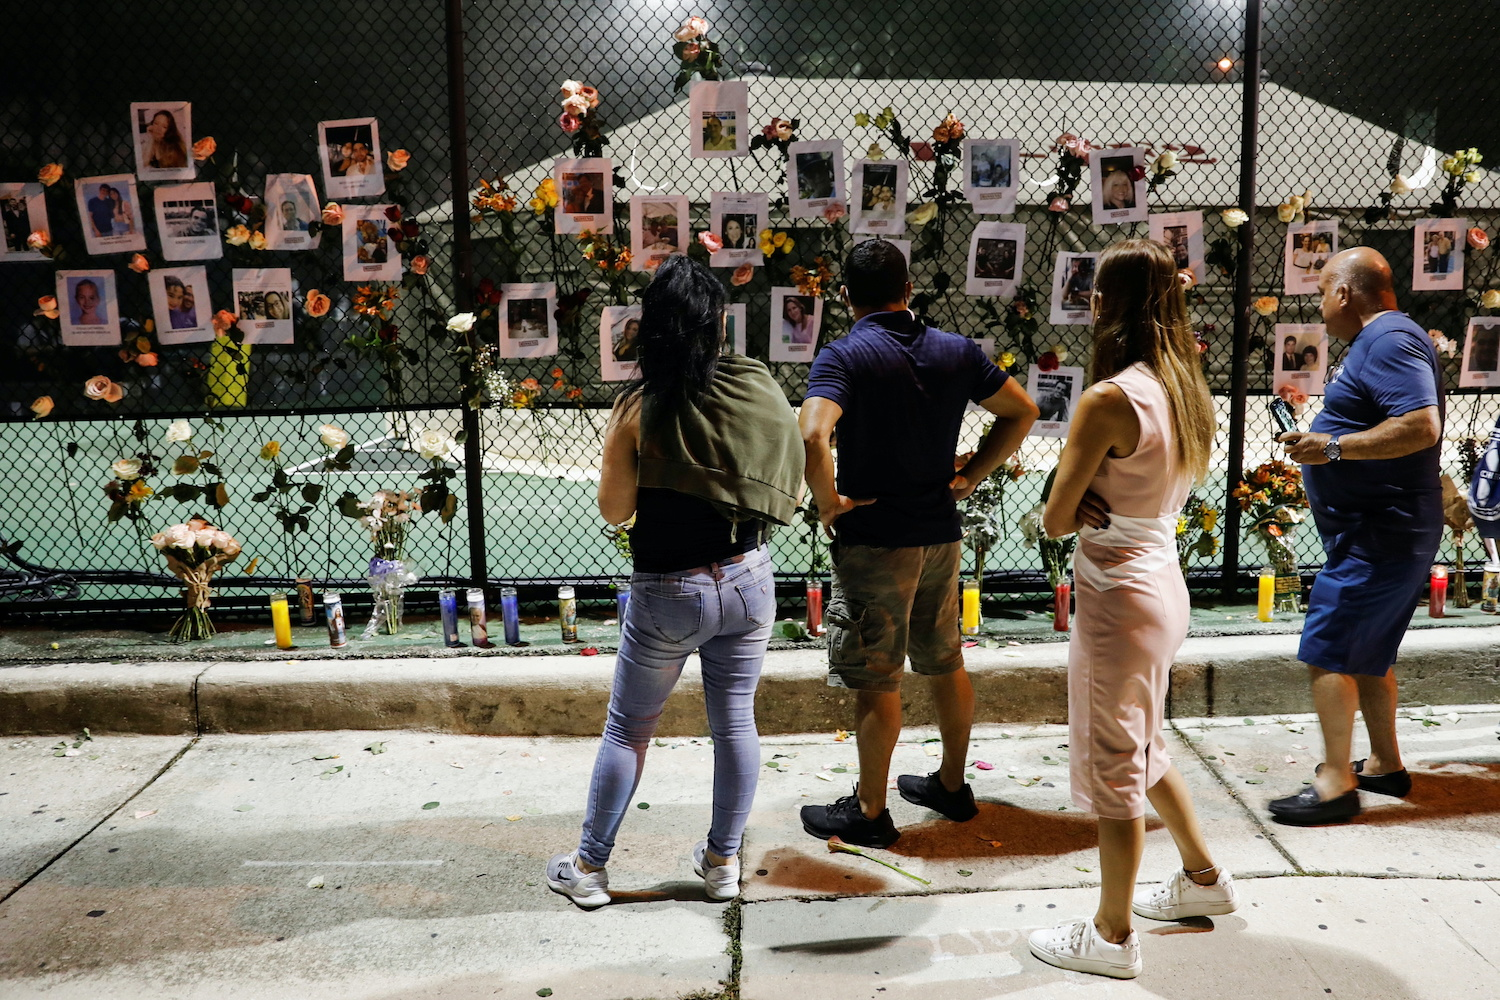 People look at flowers and pictures of missing people hanging on a fence at a memorial for victims of a partially collapsed condominium building in Surfside, near Miami Beach, Florida, on Friday evening. (Reuters Photo)